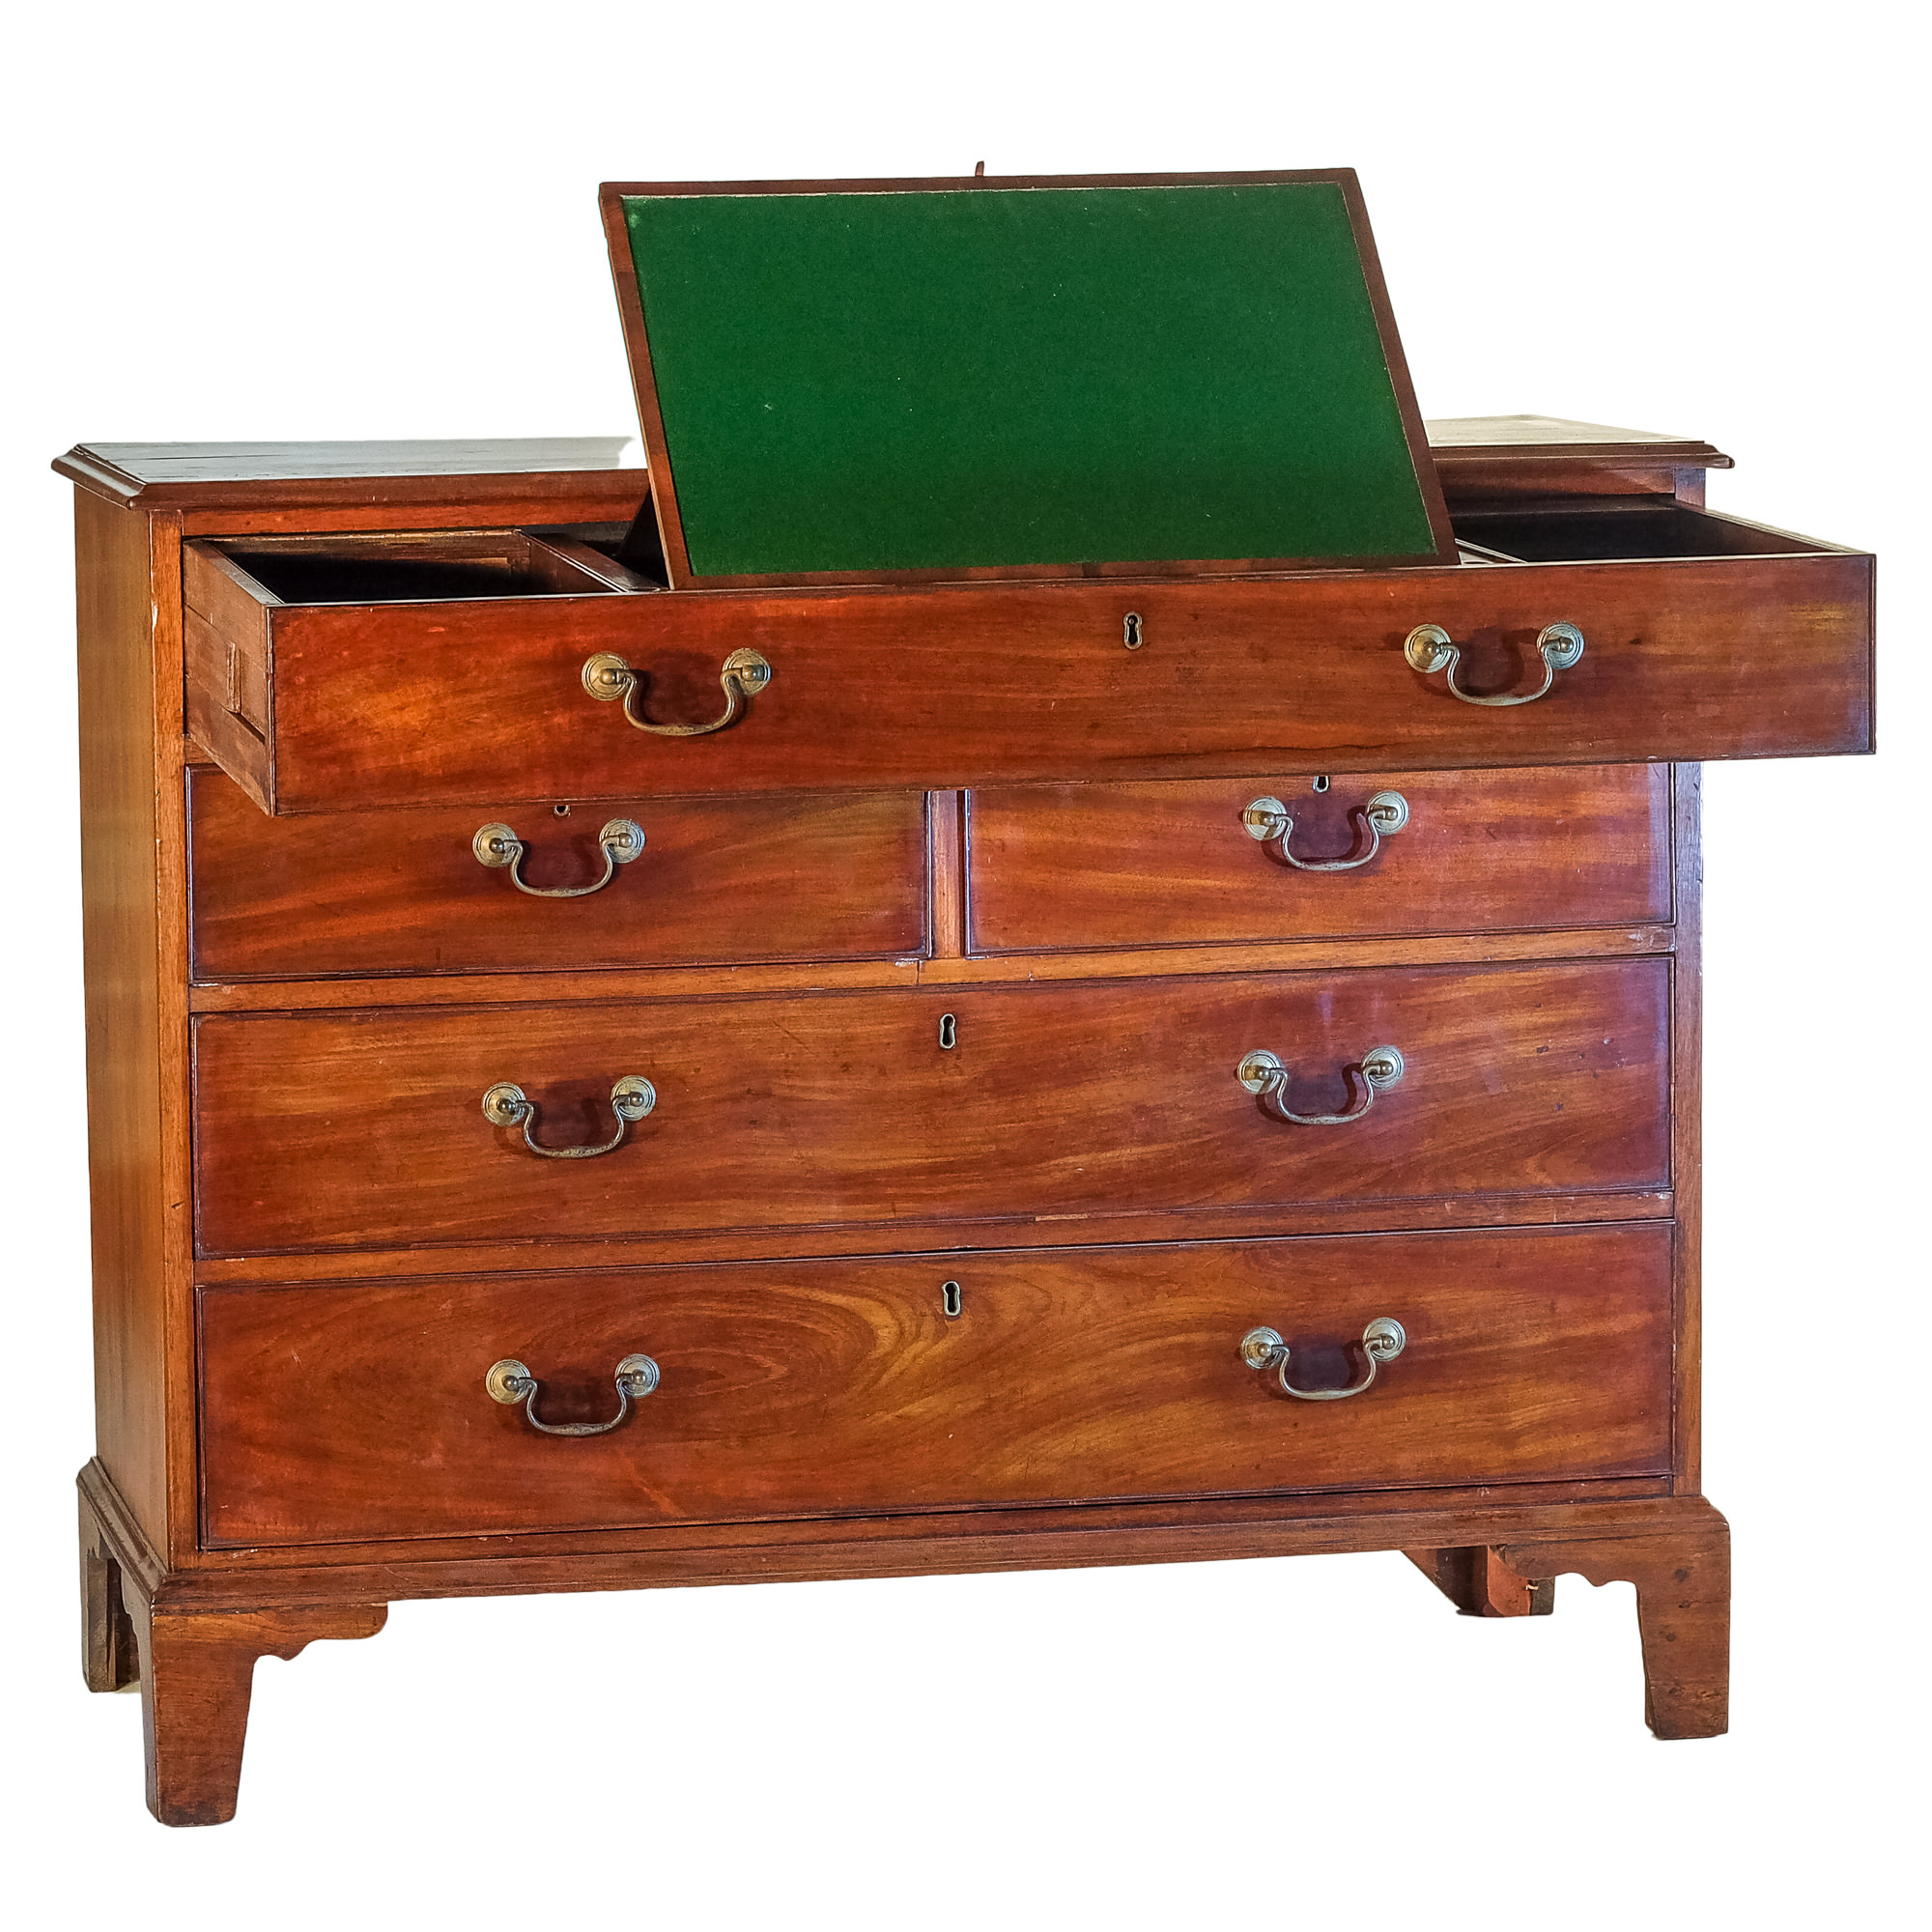 'George III Mahogany Bachelors Writing Chest with Lectern Circa 1780'